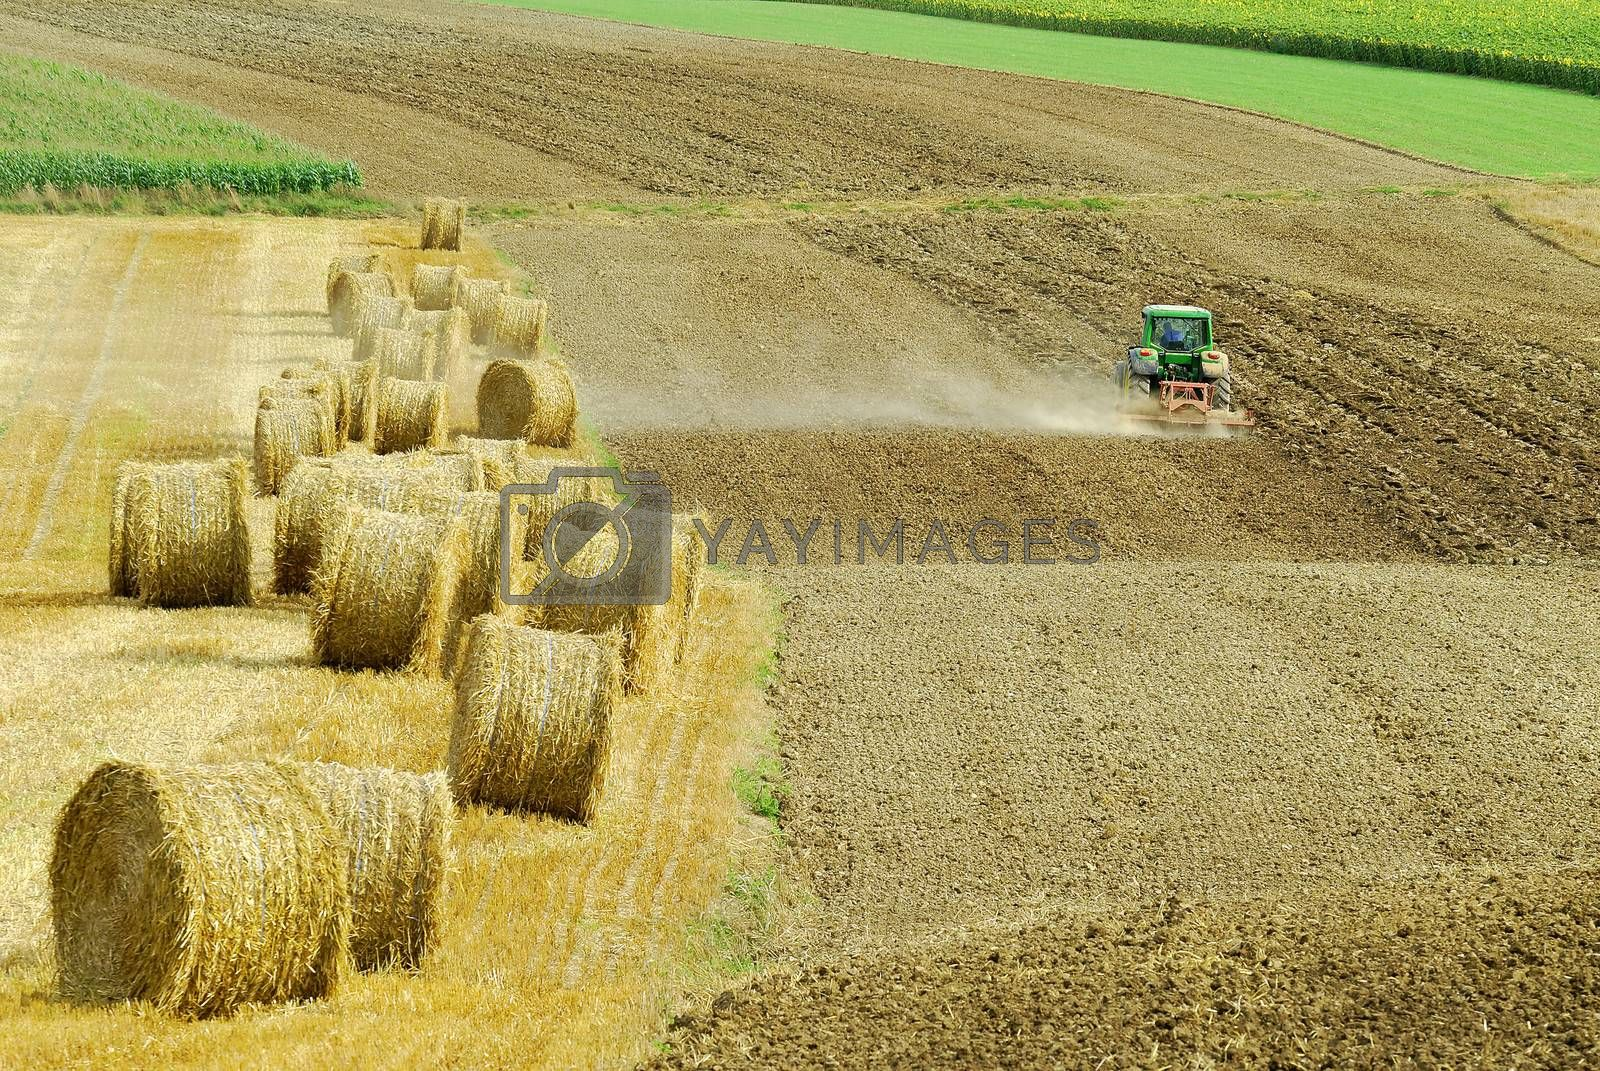 a tractor plowing the fields